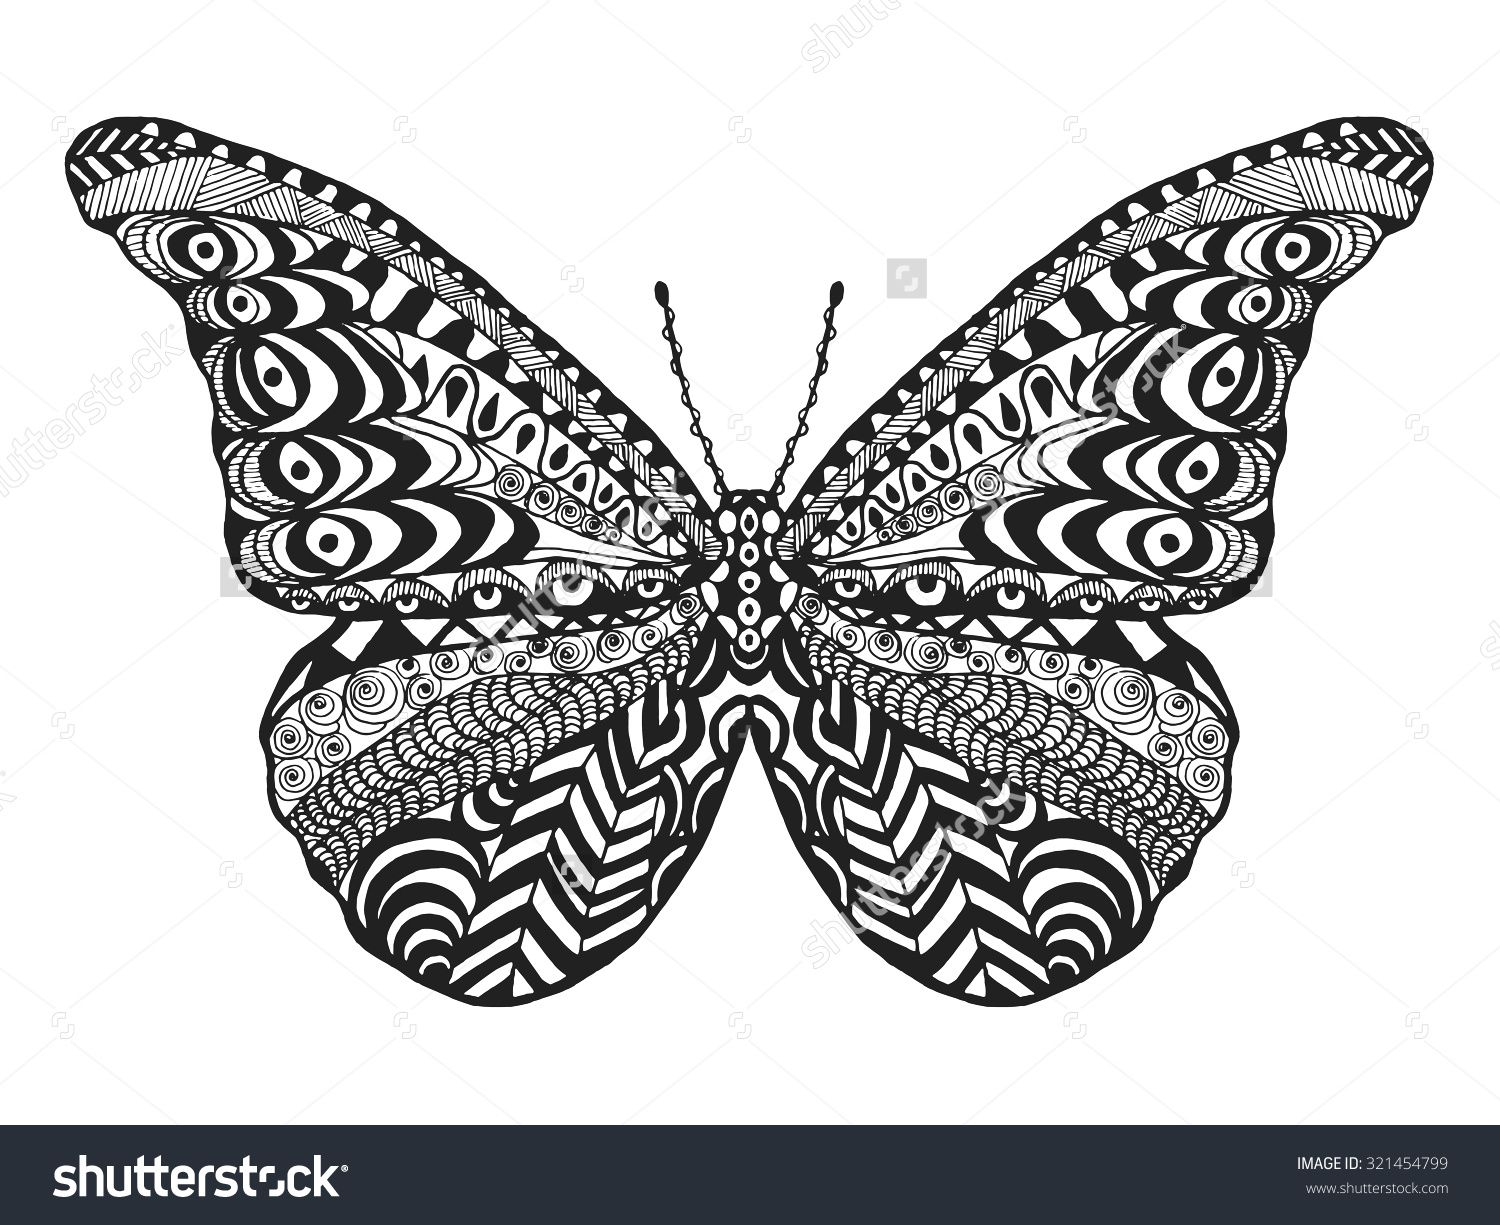 butterfly outline scrollwork coloring book style google search